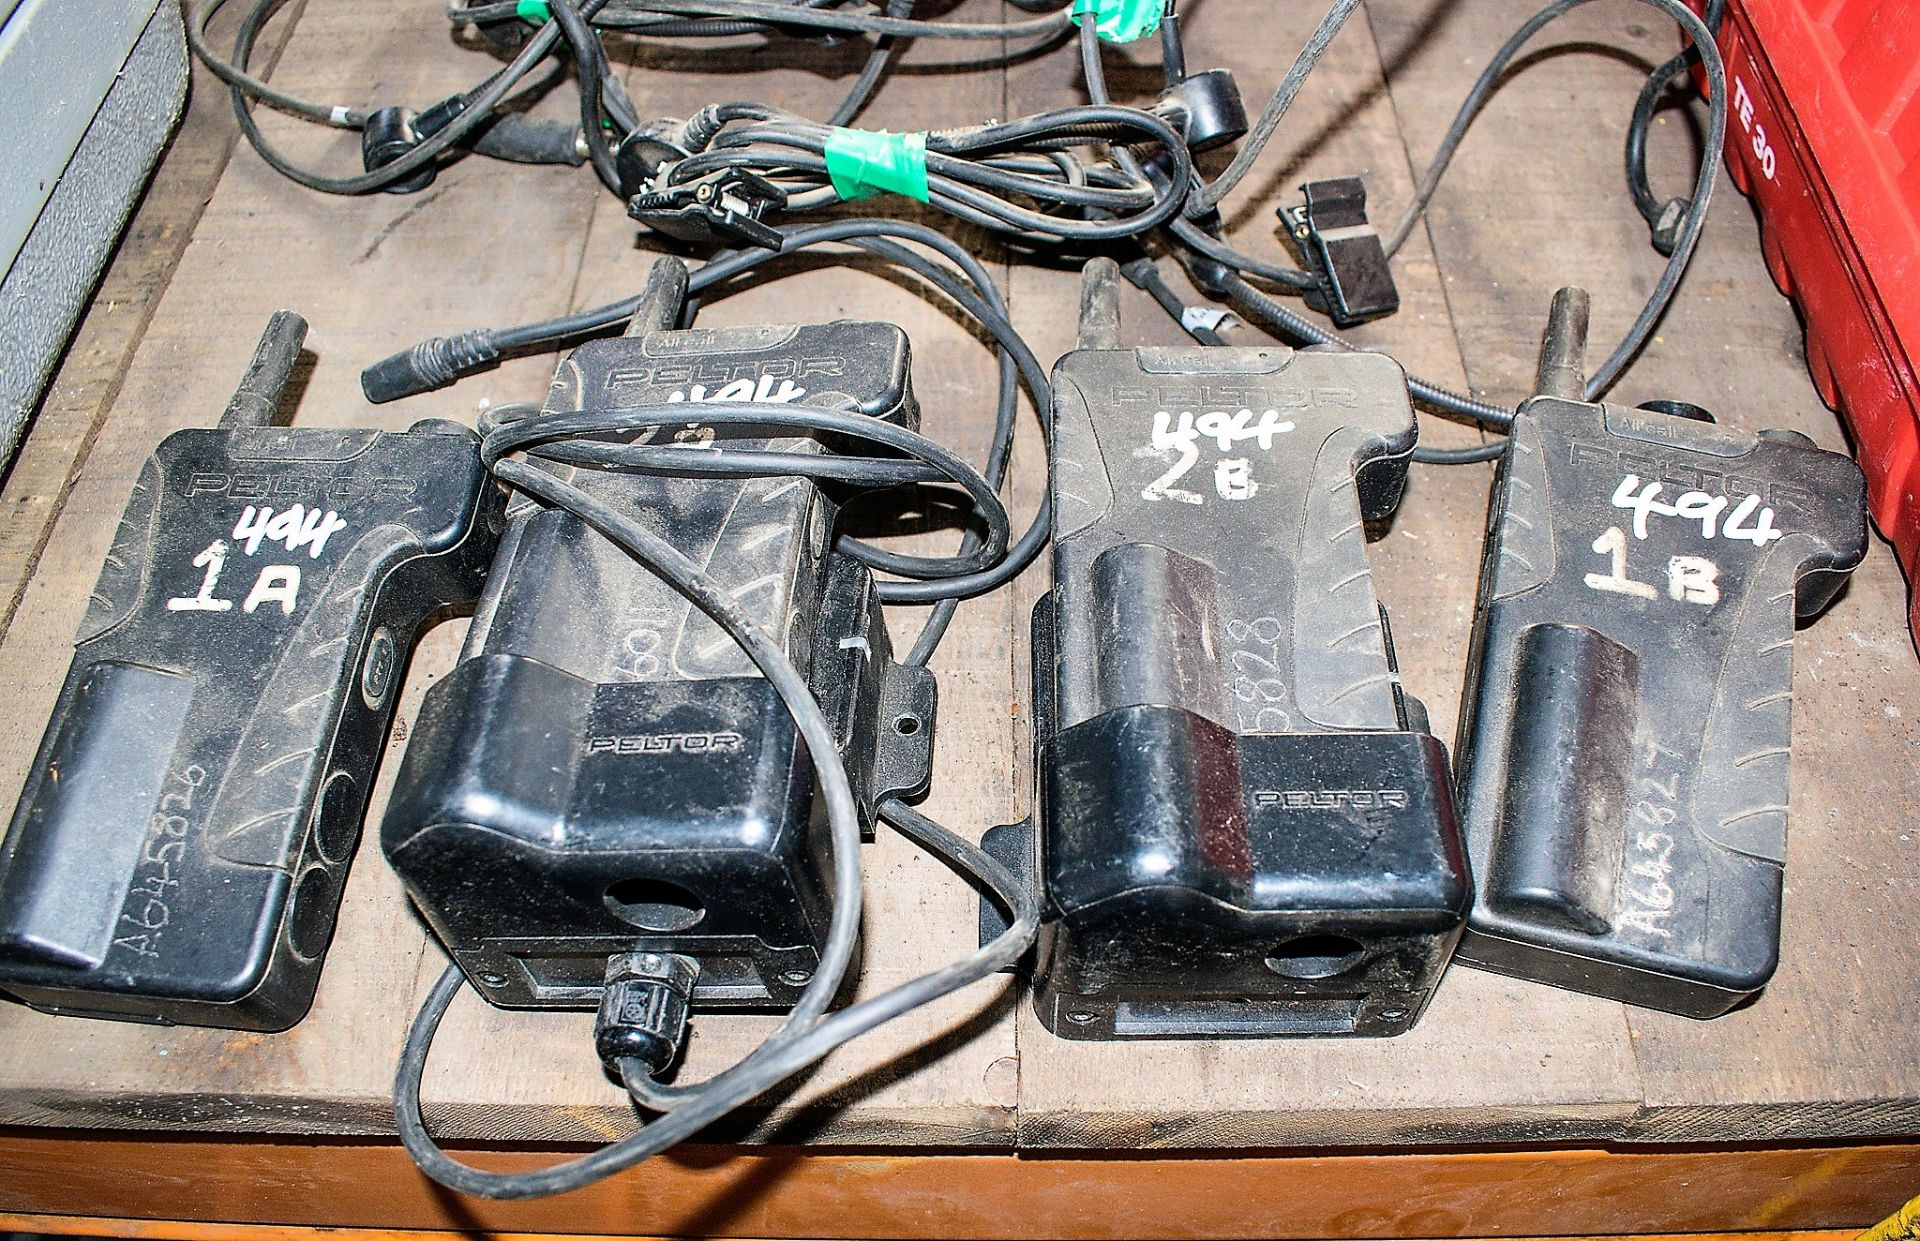 Lot 494 - 4 - Peltor 2 way radios c/w 2 - chargers & 4 - headsets